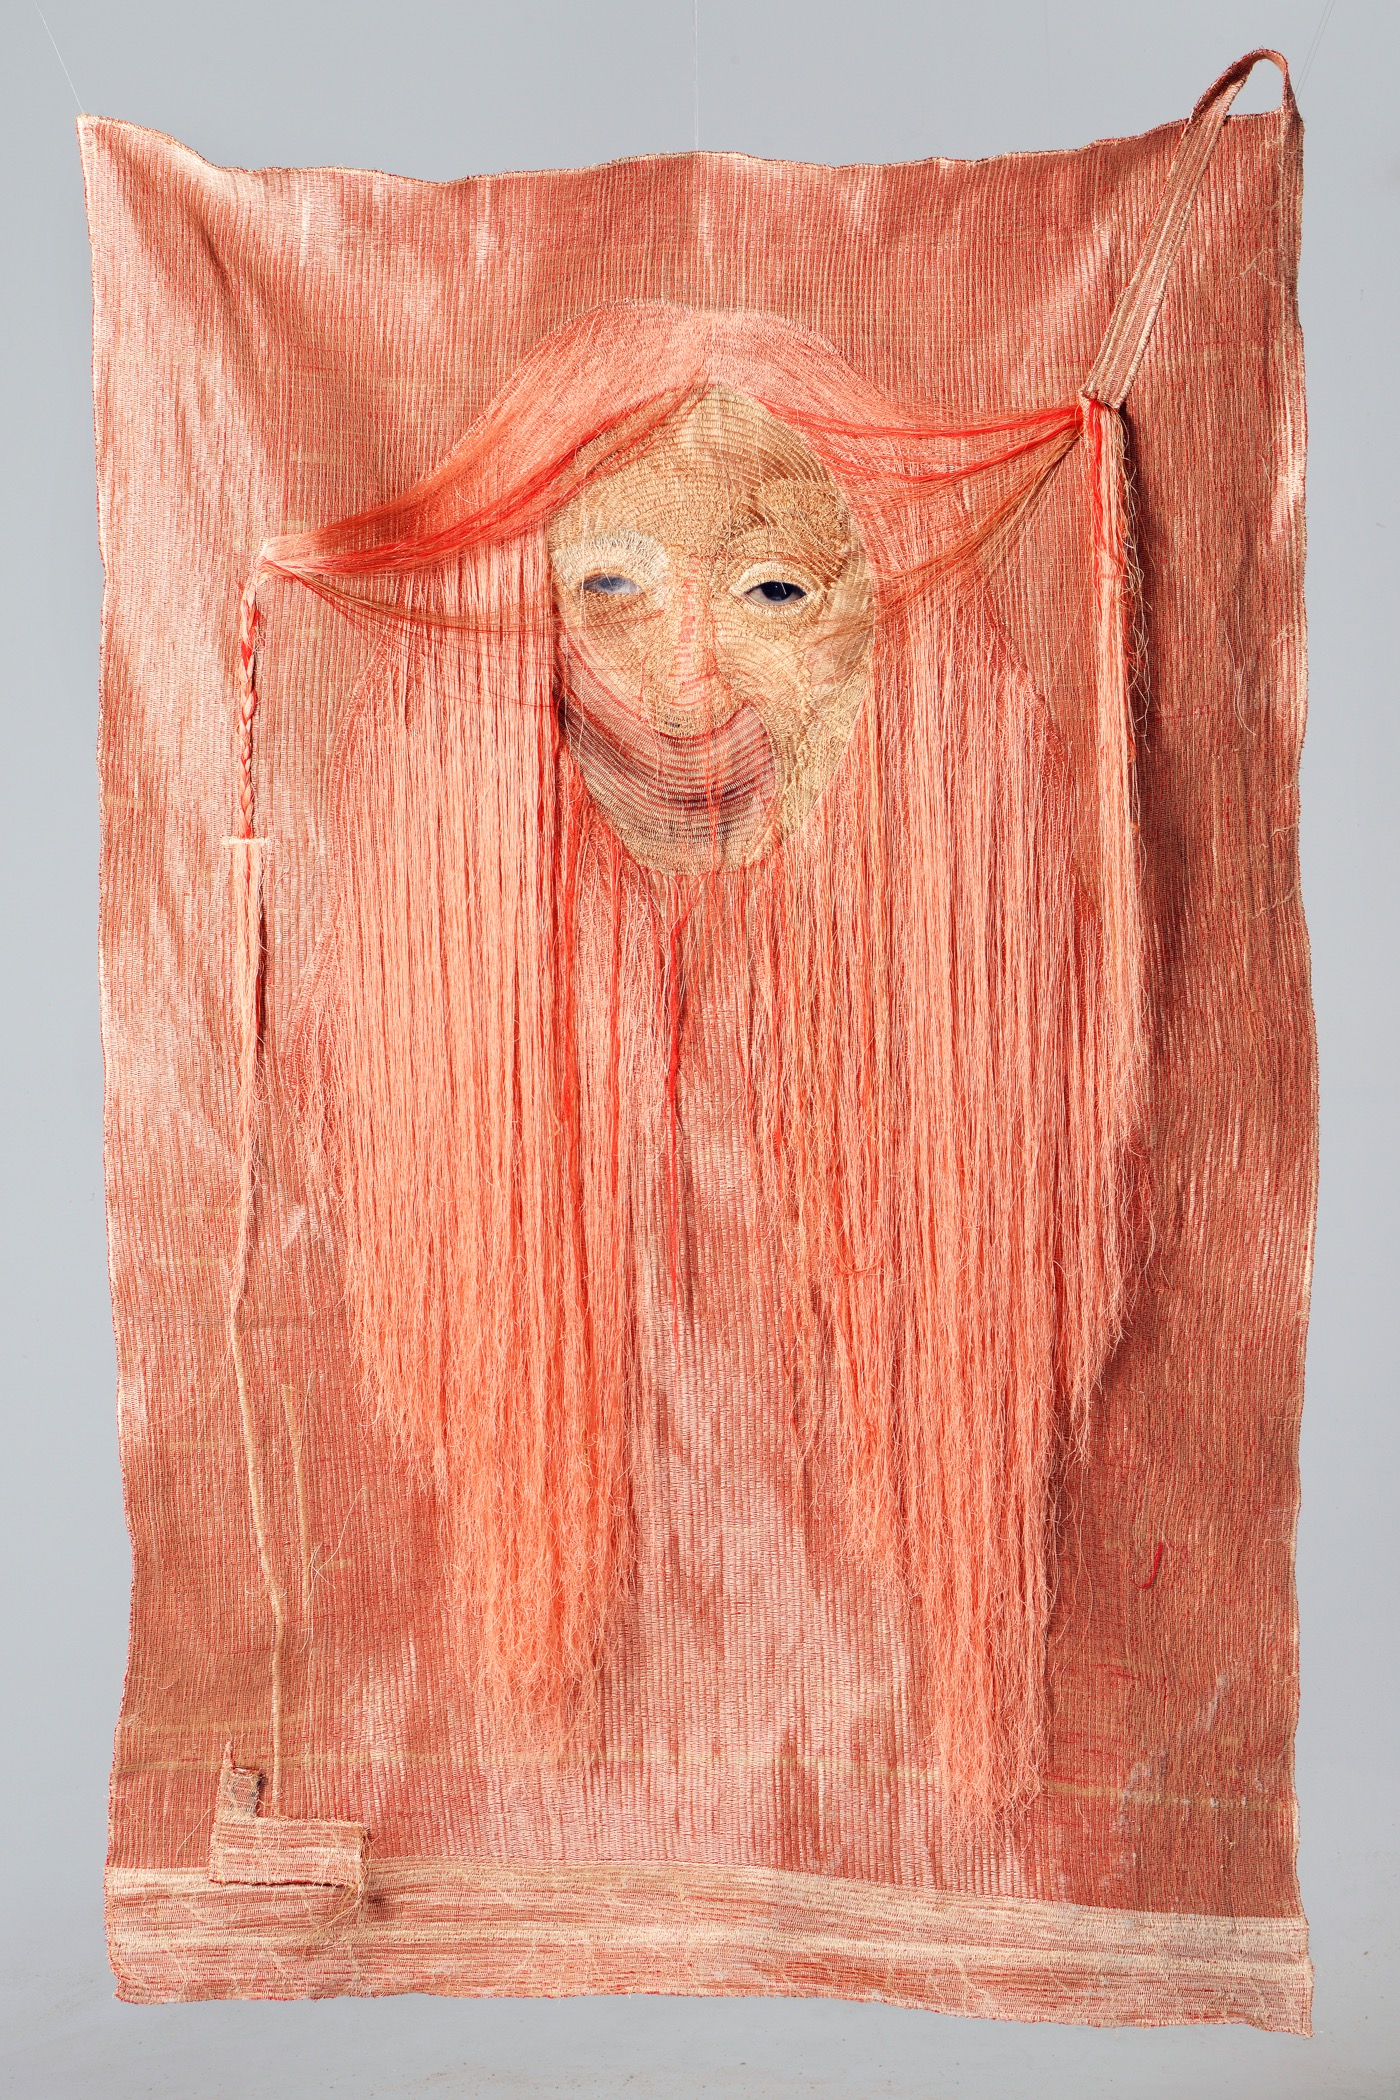 Yoon Ji Seon, Rag face#14002, 2014 Sewing on fabric and photograph, 66 7/8 x 42 7/8 in Courtesy the Artist andYossi Milo Gallery, New York